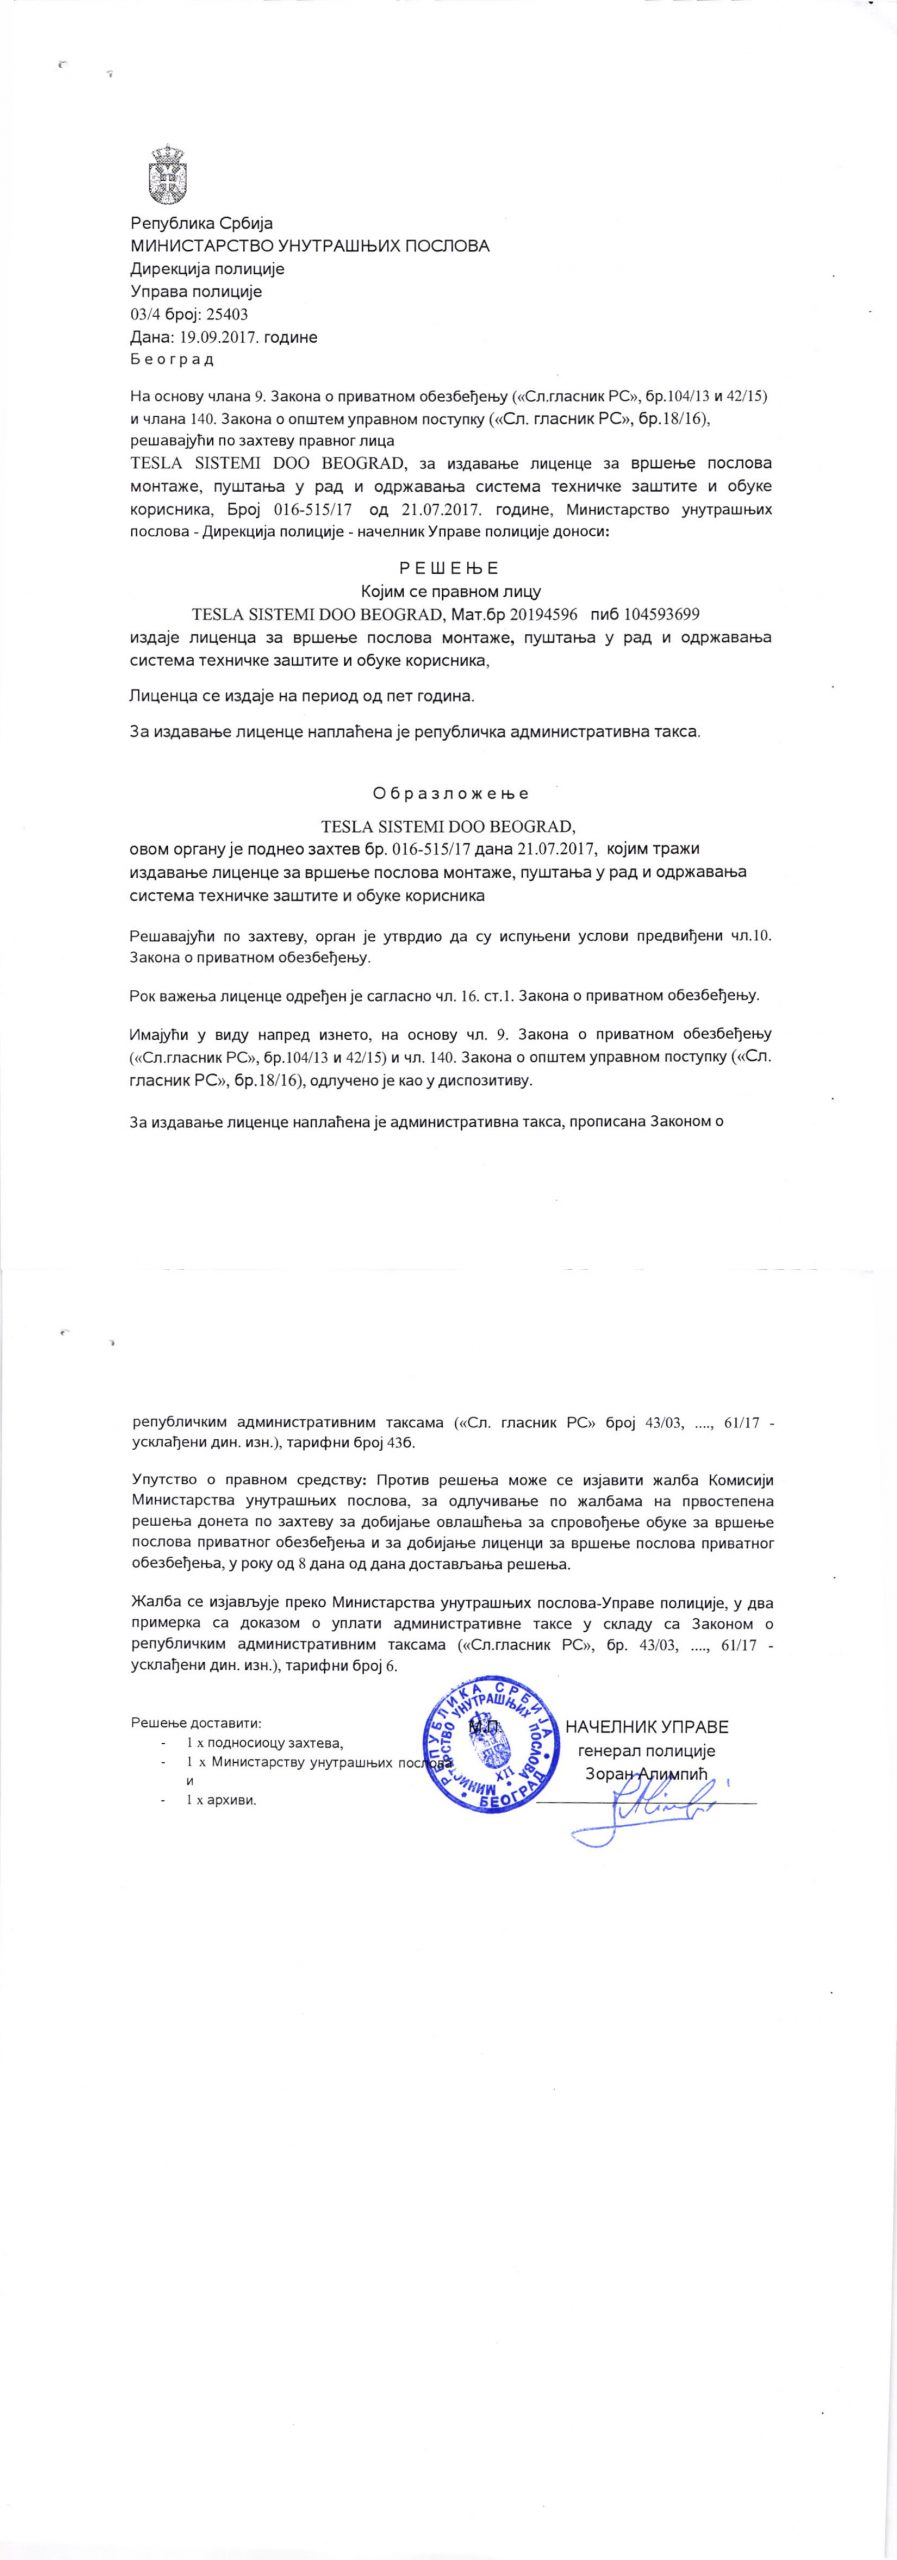 License for installation, commissioning and maintenance of technical protection and user training systems